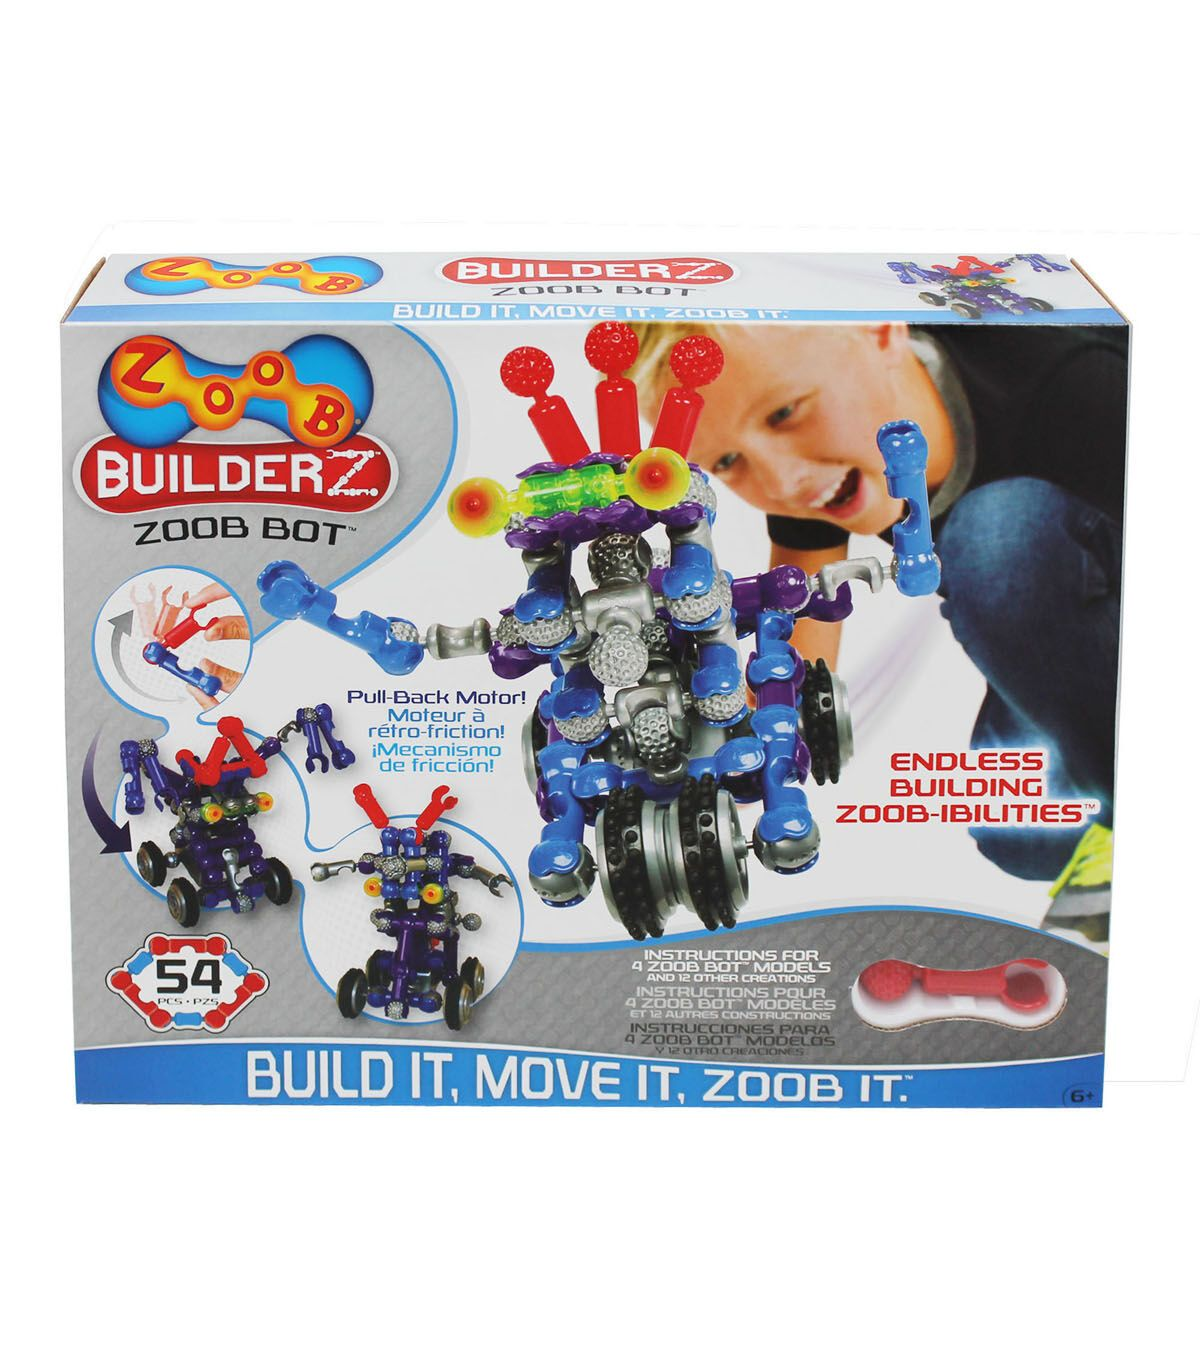 ZOOB BuilderZ BOT Building Set Educational toys for kids